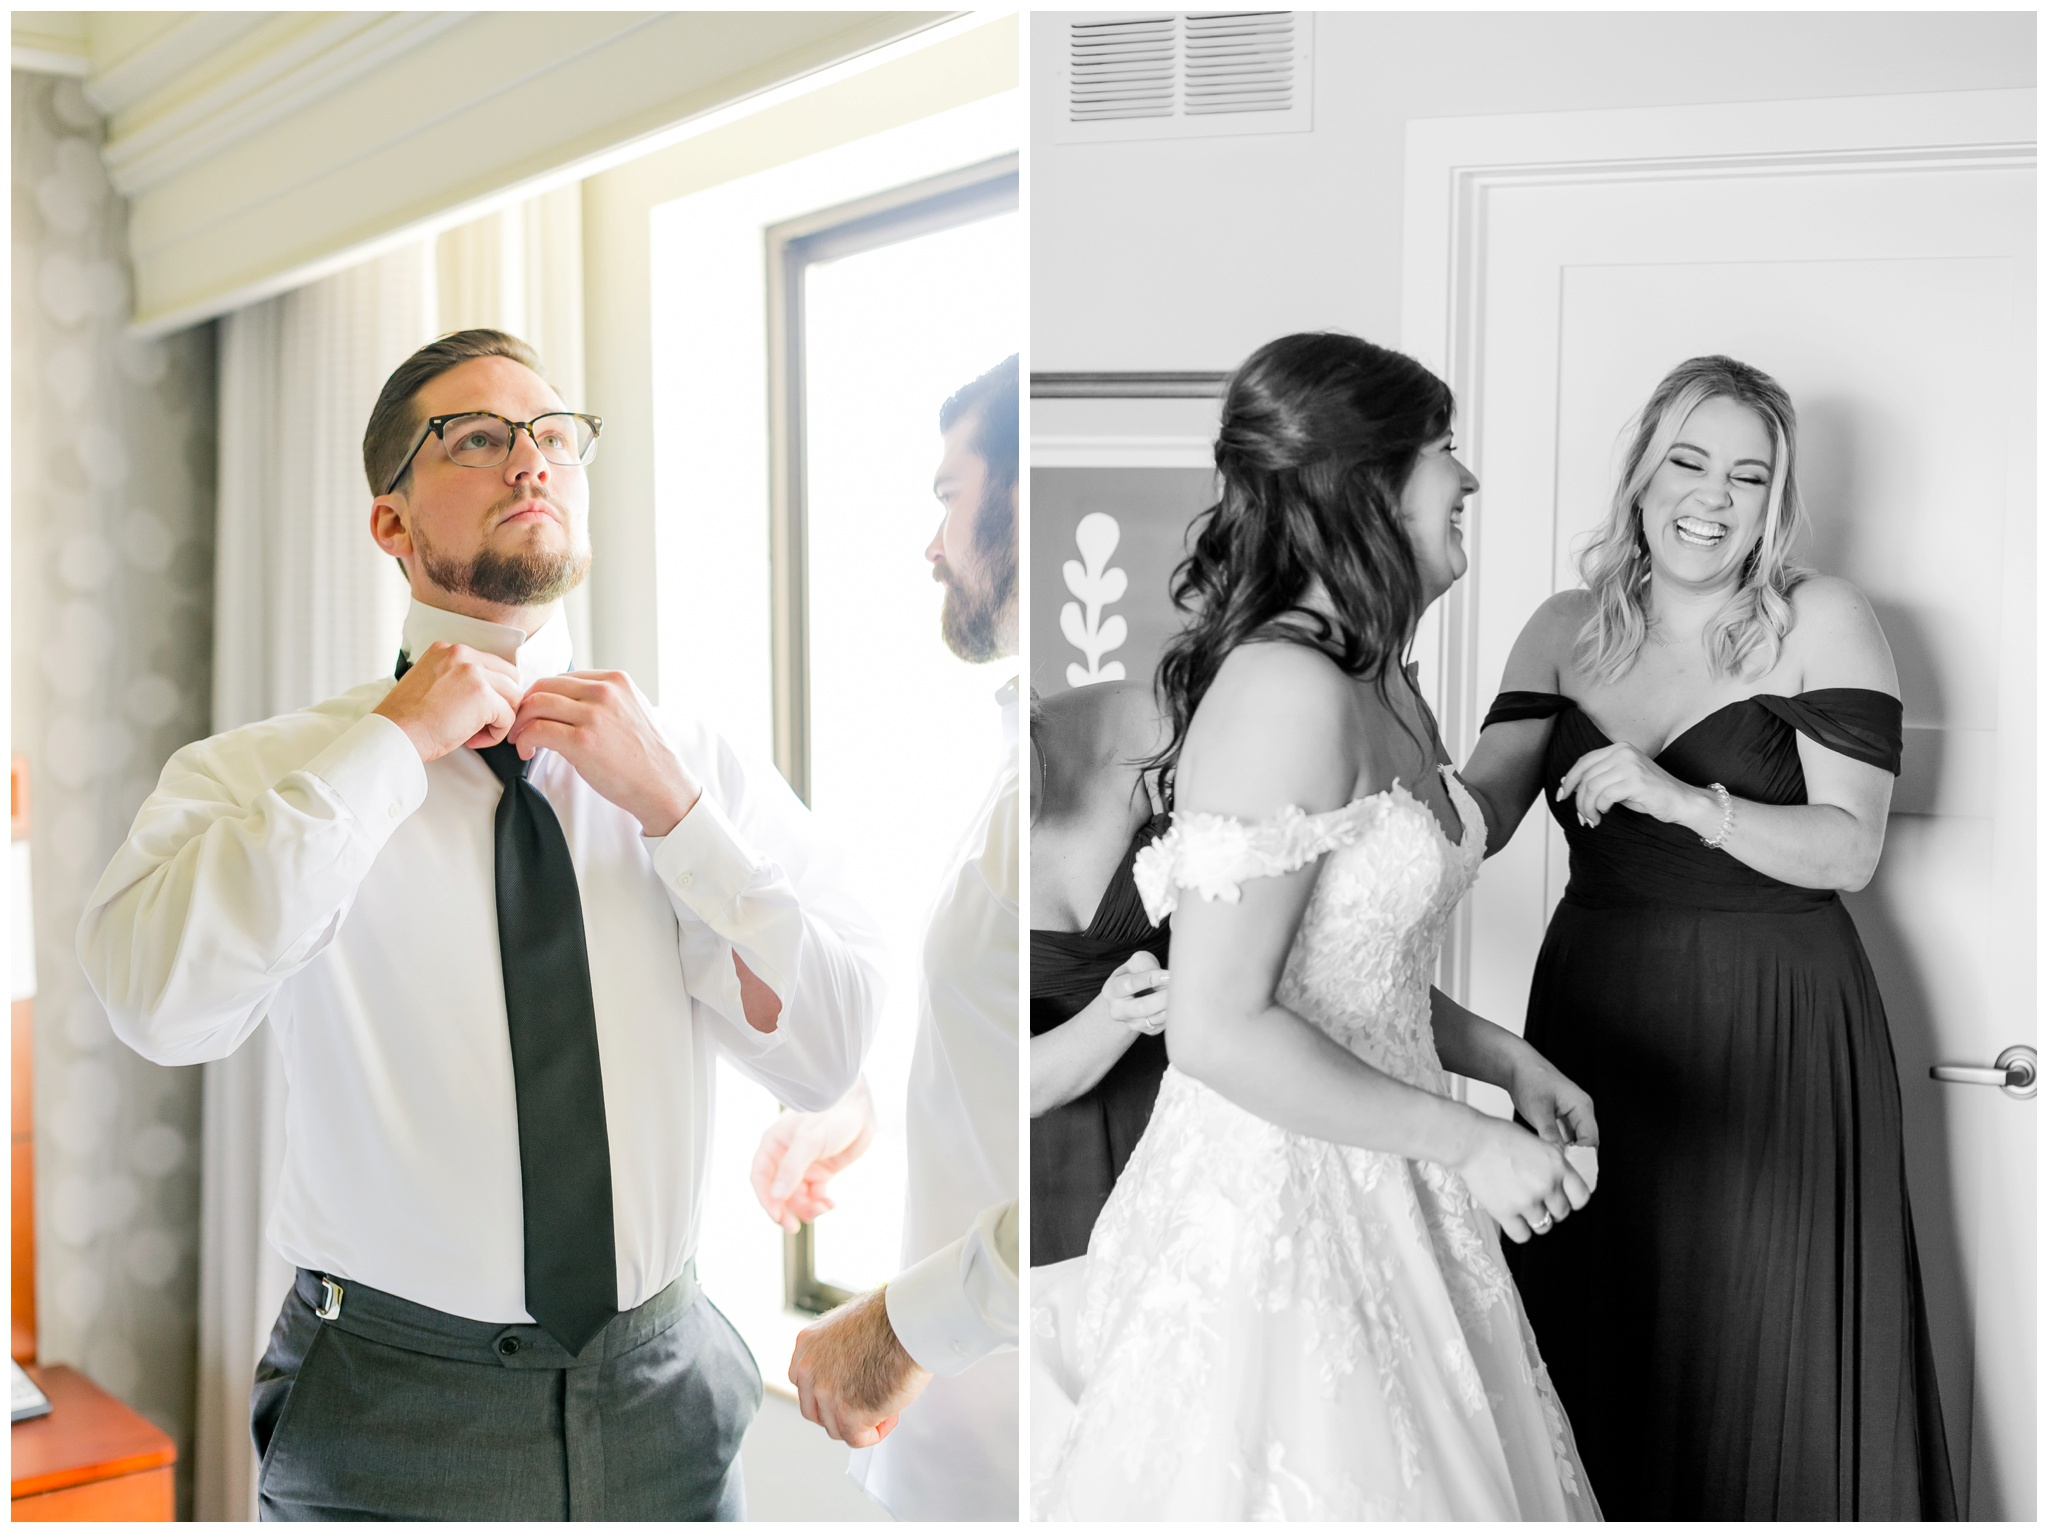 bishops_bay_country_club_wedding_middleton_wisconsin_caynay_photo_4702.jpg